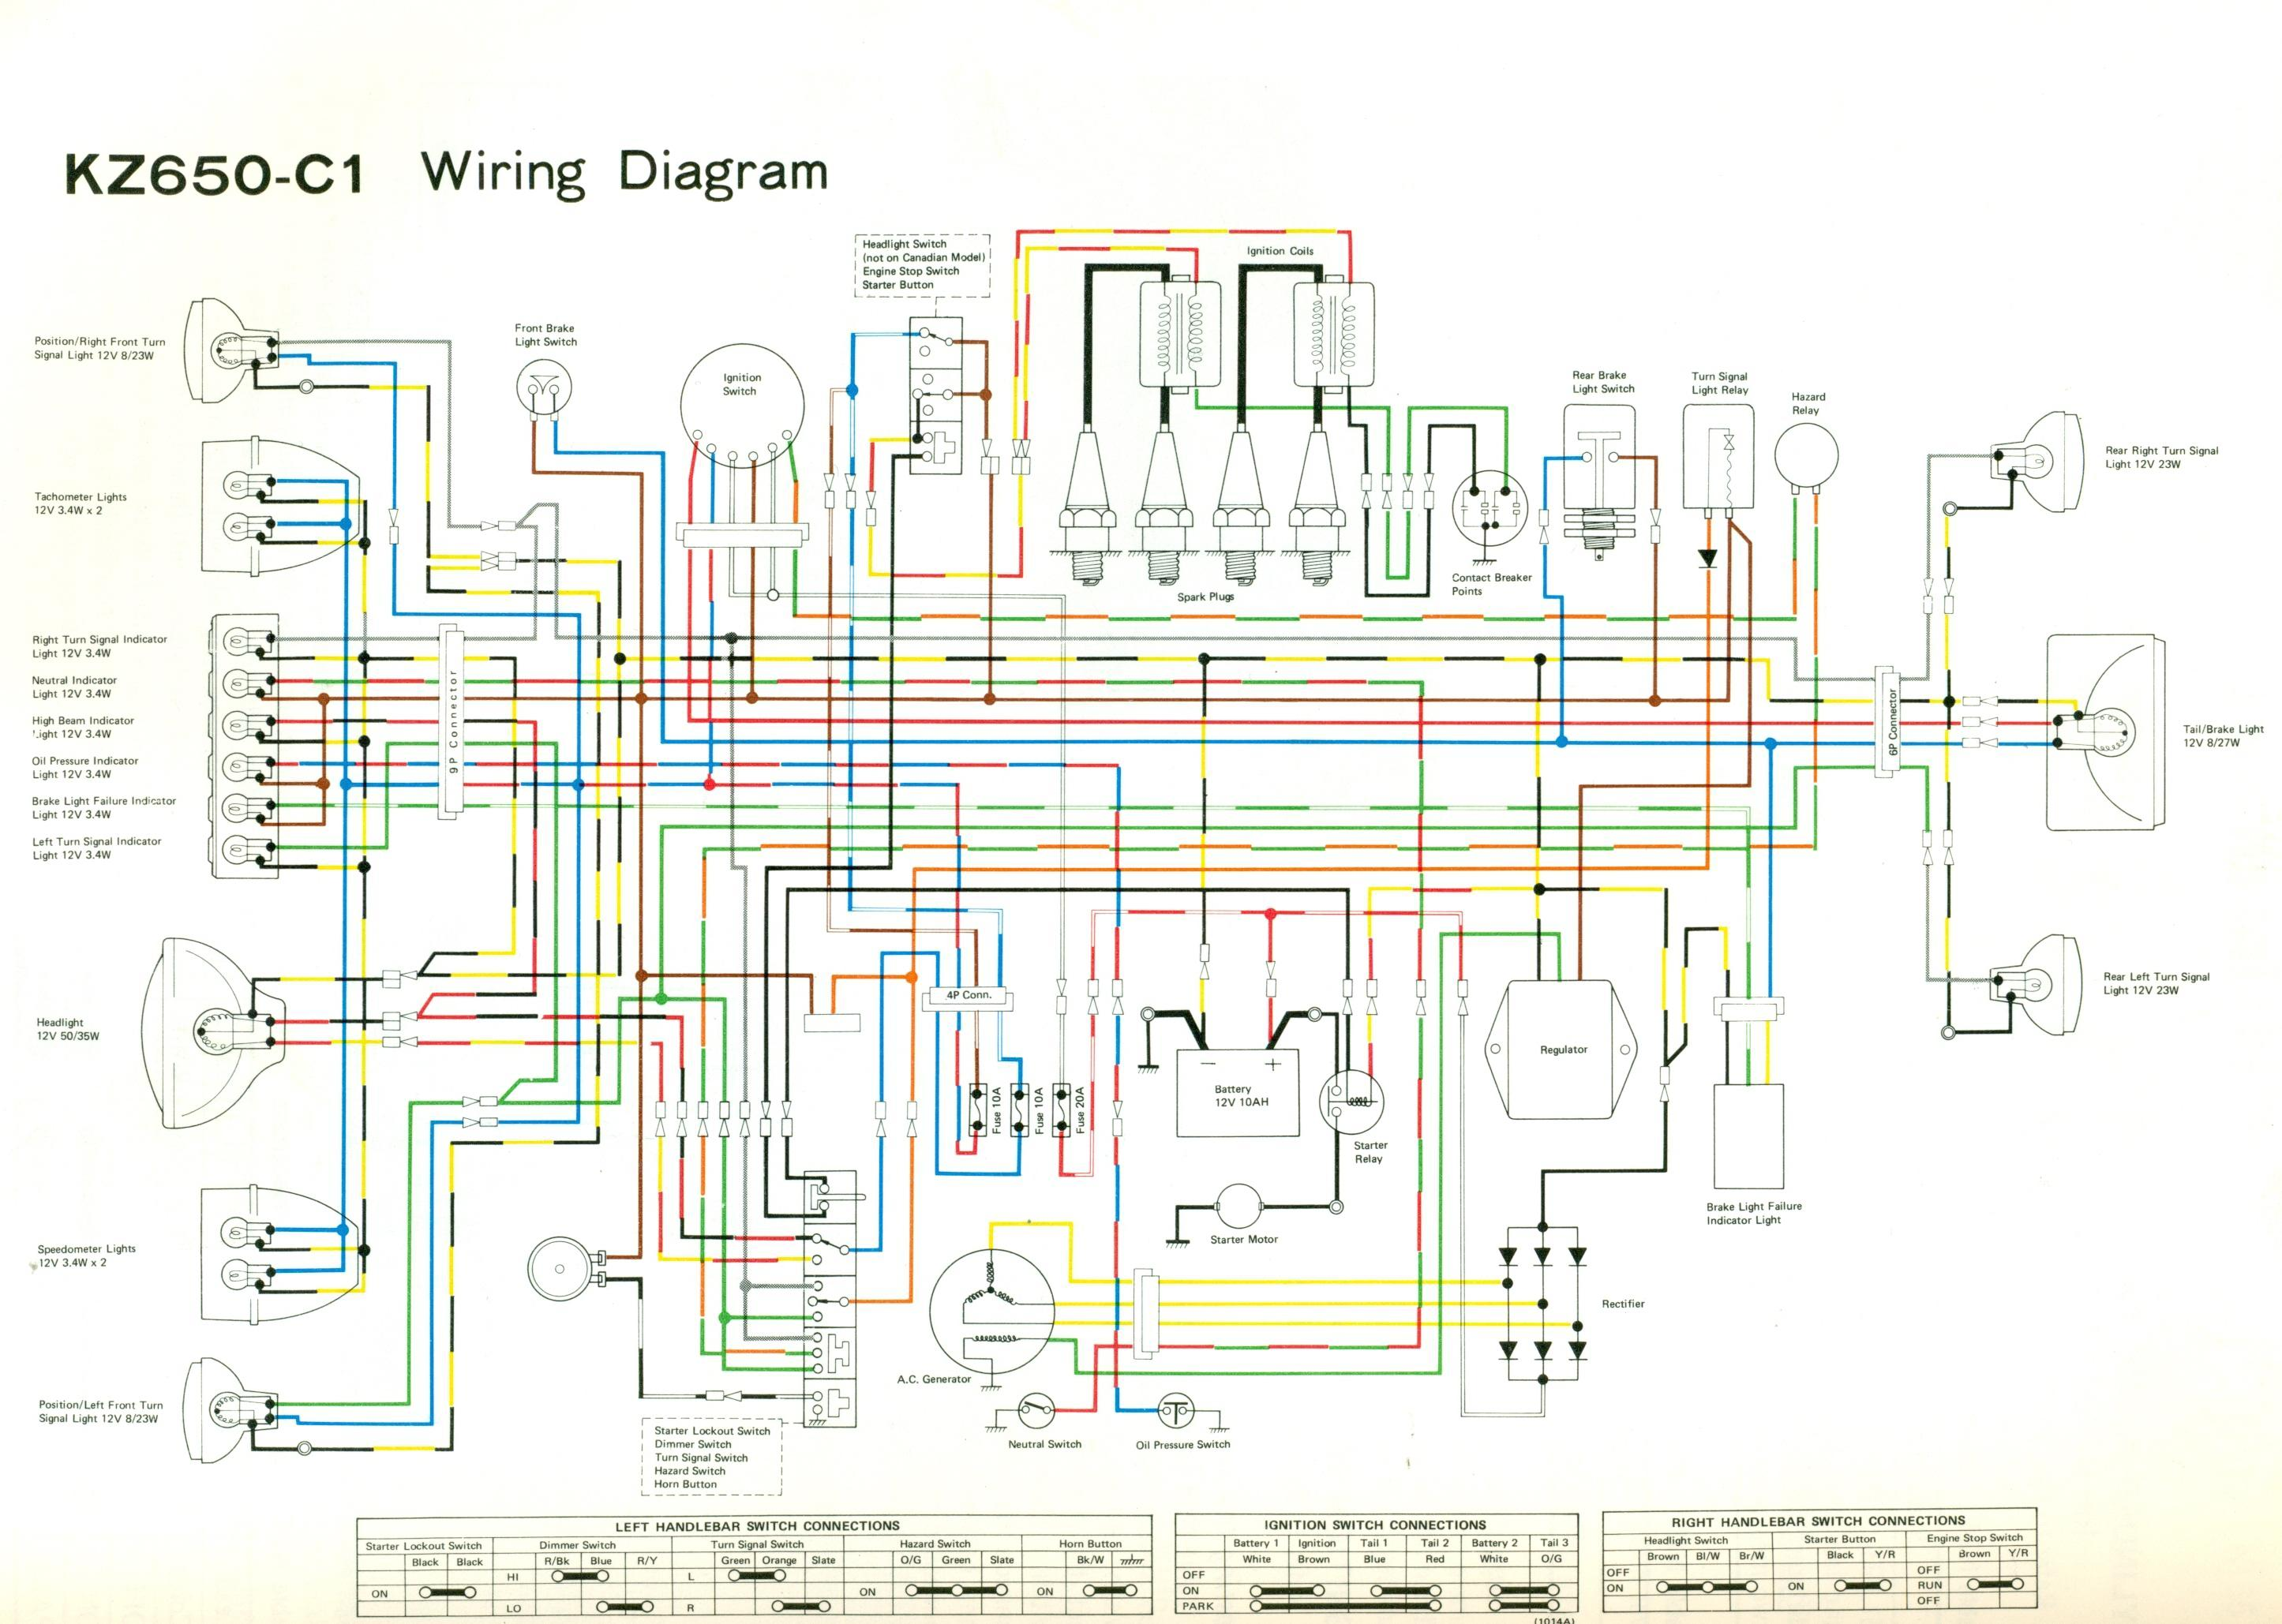 Wiring Diagrams Battery Indicator Diagram Kz650 C